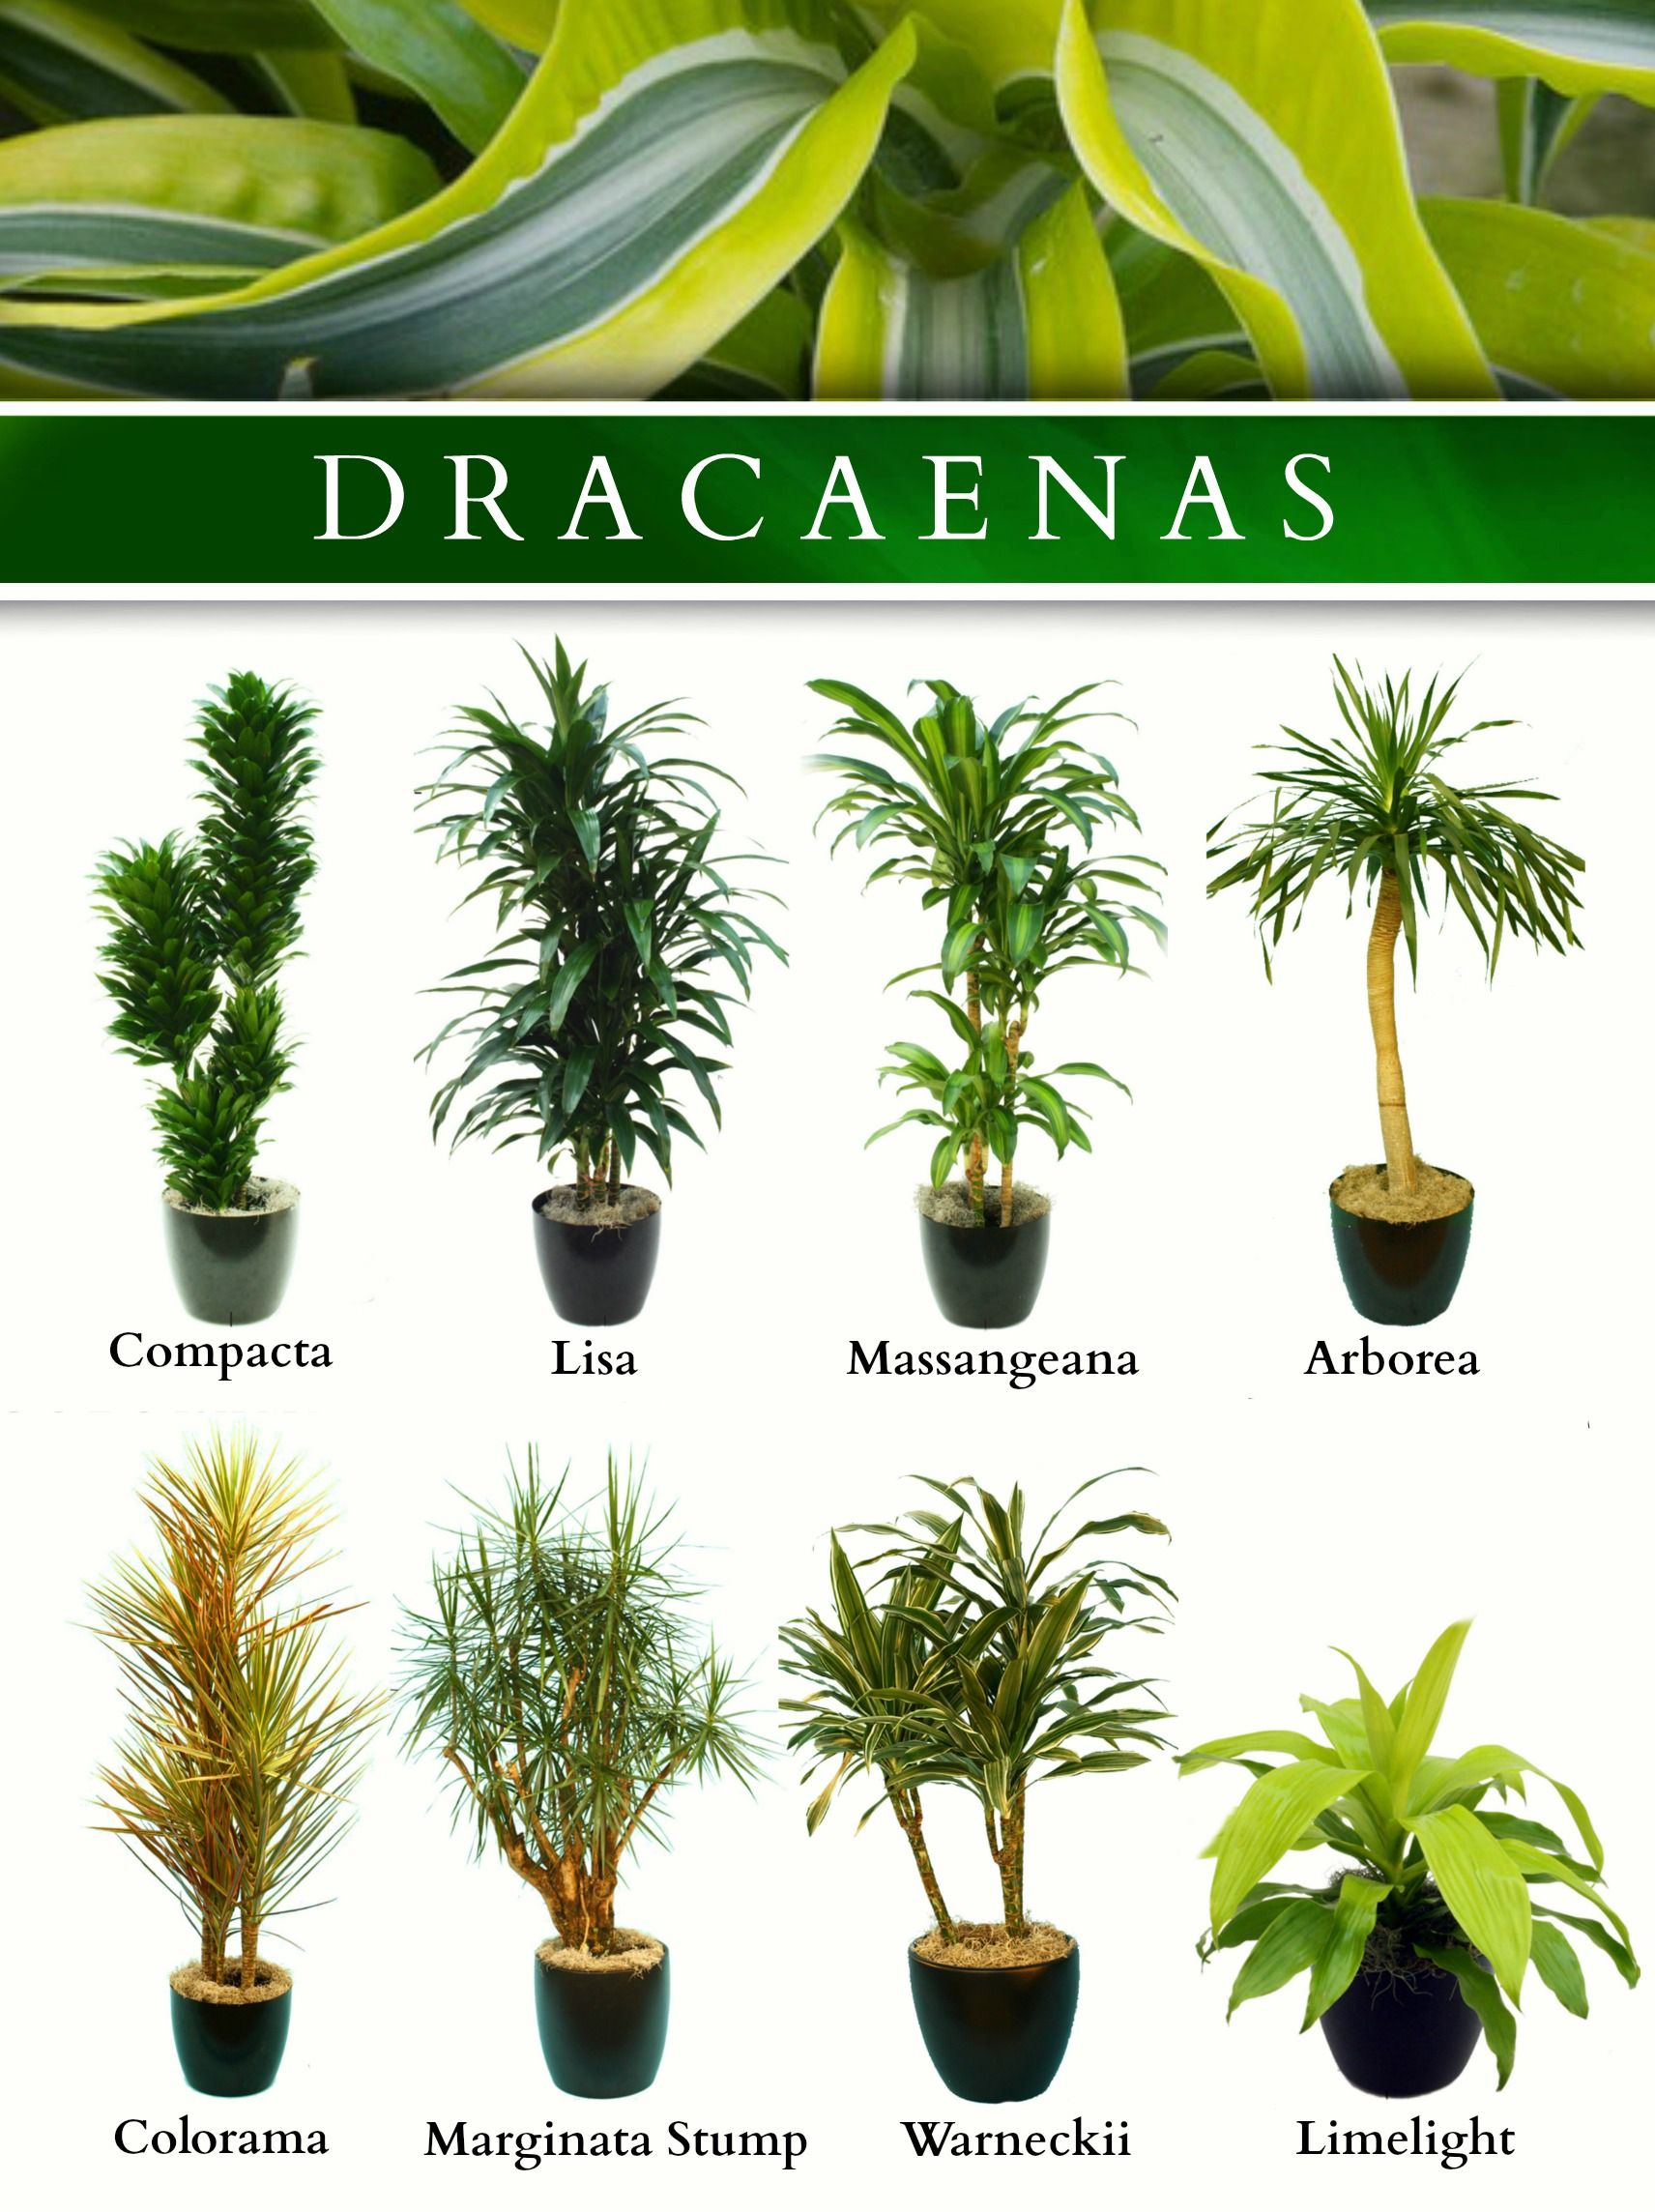 c868fca629330af357ffc60618e3085d Types Of Tree Palm House Plant List on house plant umbrella tree, indoor palm plants types, like palm plants types, house with palm trees, dracaena house plant types, house plants that look like trees, lady palm tree types, house plant schefflera actinophylla, indoor ponytail palm tree types, small indoor palm tree types, identify tree types, house plants palms identify, house plants at lowe's, house plant rubber tree, south florida palm tree types, double trunk palm tree types, home plants types, house plant banana tree, palm names types,